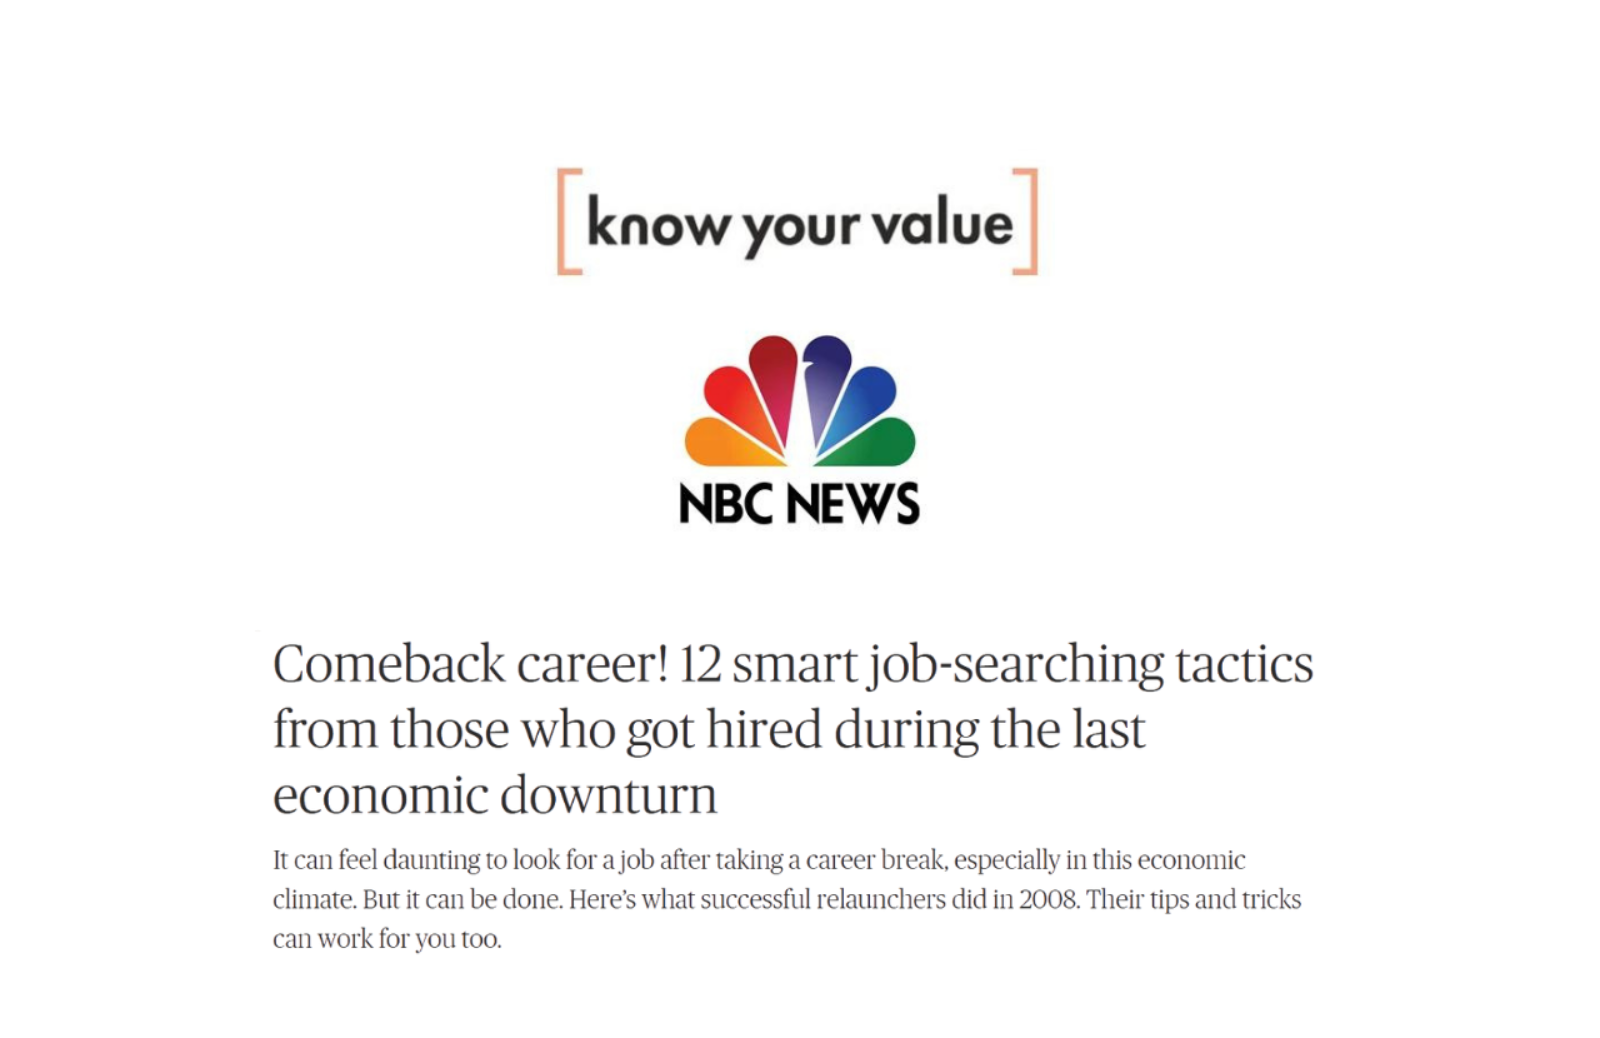 Know Your Value Comeback Career 12 Smart Job Searching Tactics news thumbnail